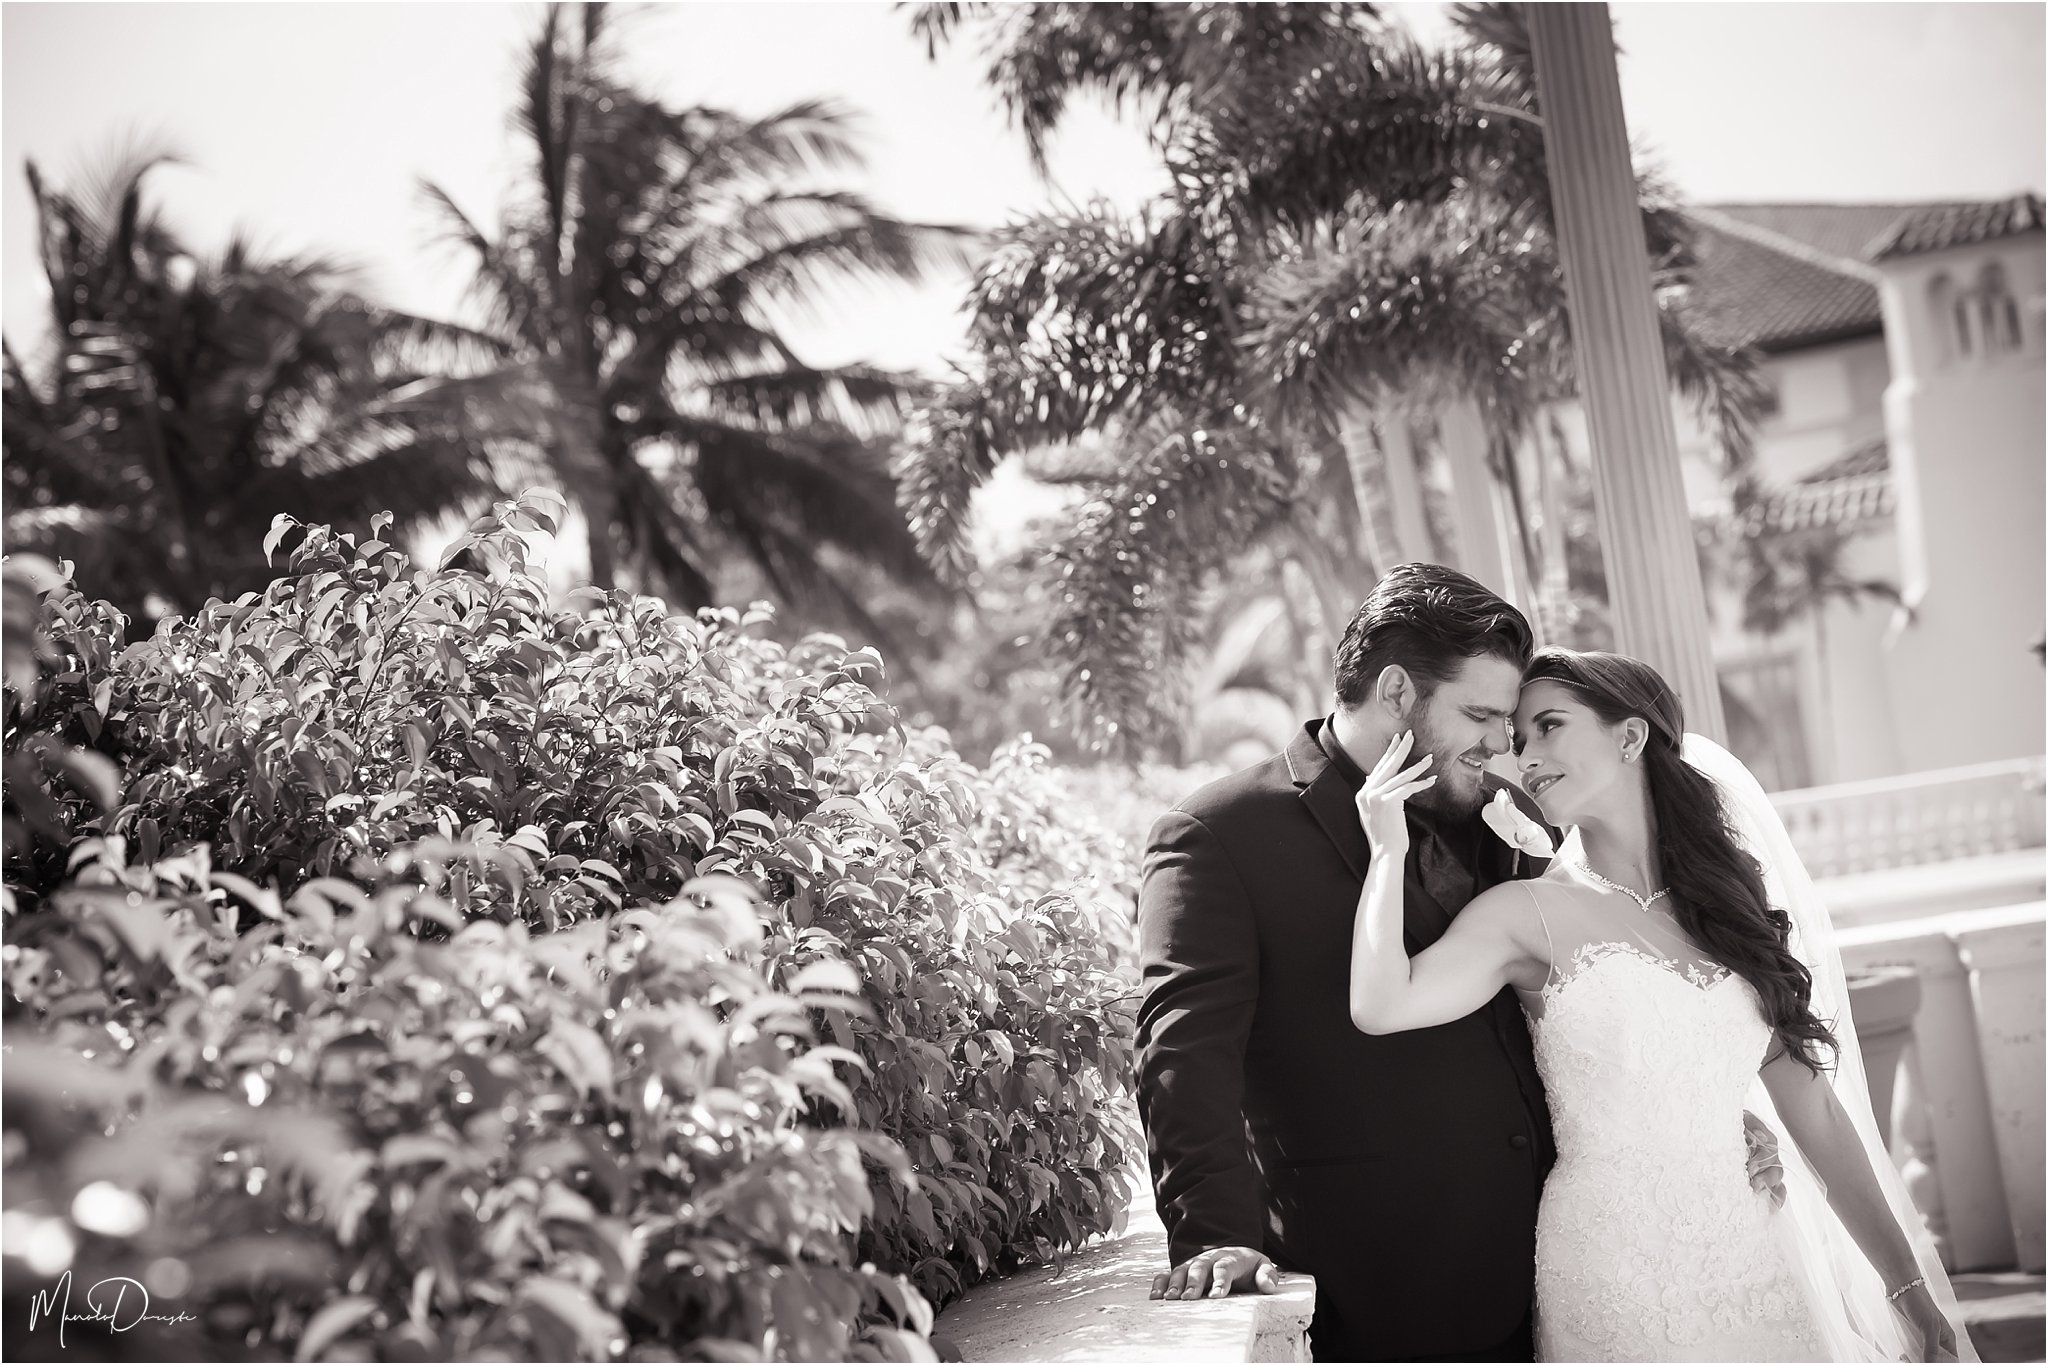 0160_ManoloDoreste_InFocusStudios_Wedding_Family_Photography_Miami_MiamiPhotographer.jpg